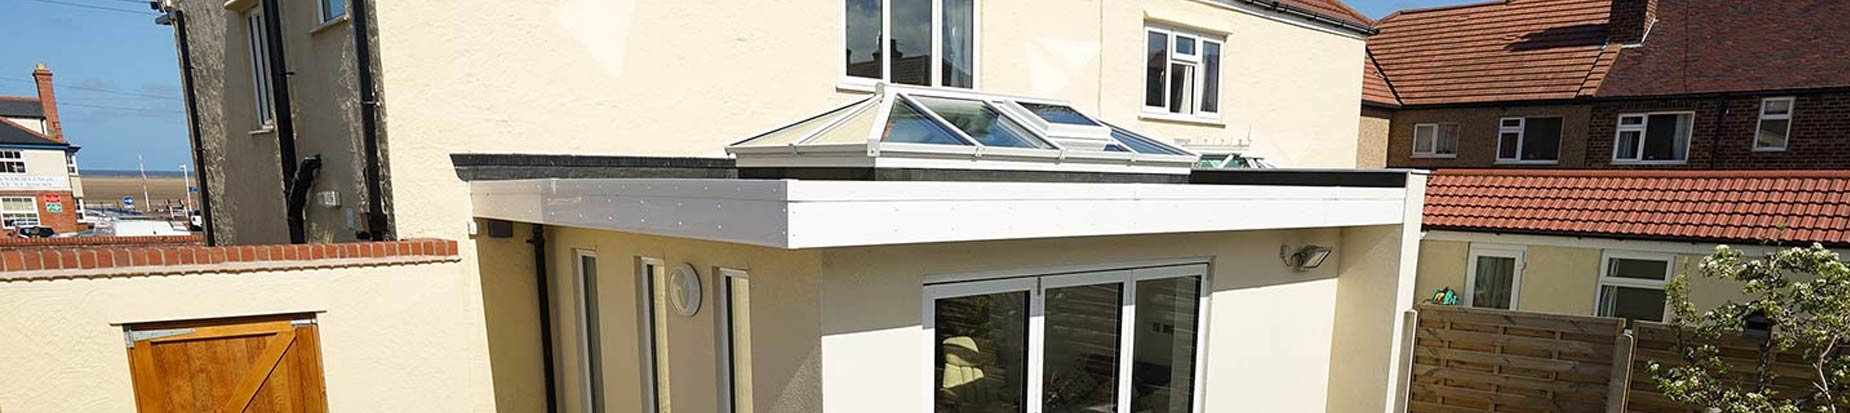 Aluminium Roof Installed in Hoylake, featuring triple glazing.